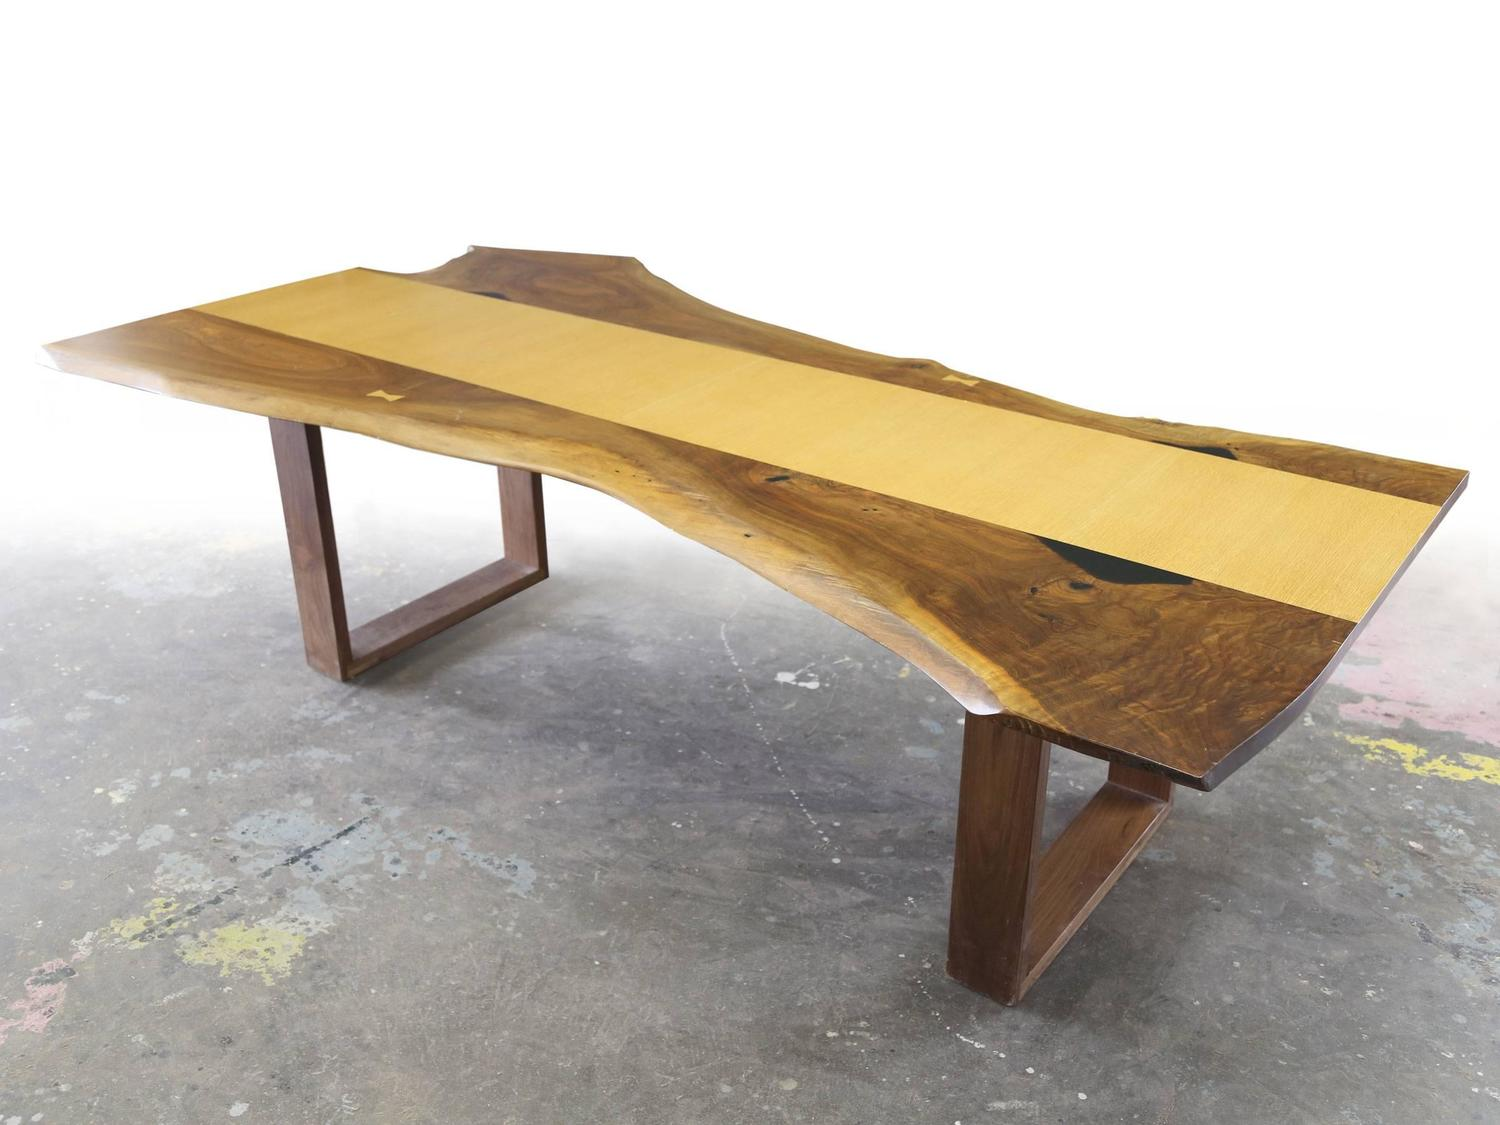 Sentient live edge black walnut slab dining table with red oak veneer for sale at 1stdibs - Oak veneer dining table ...